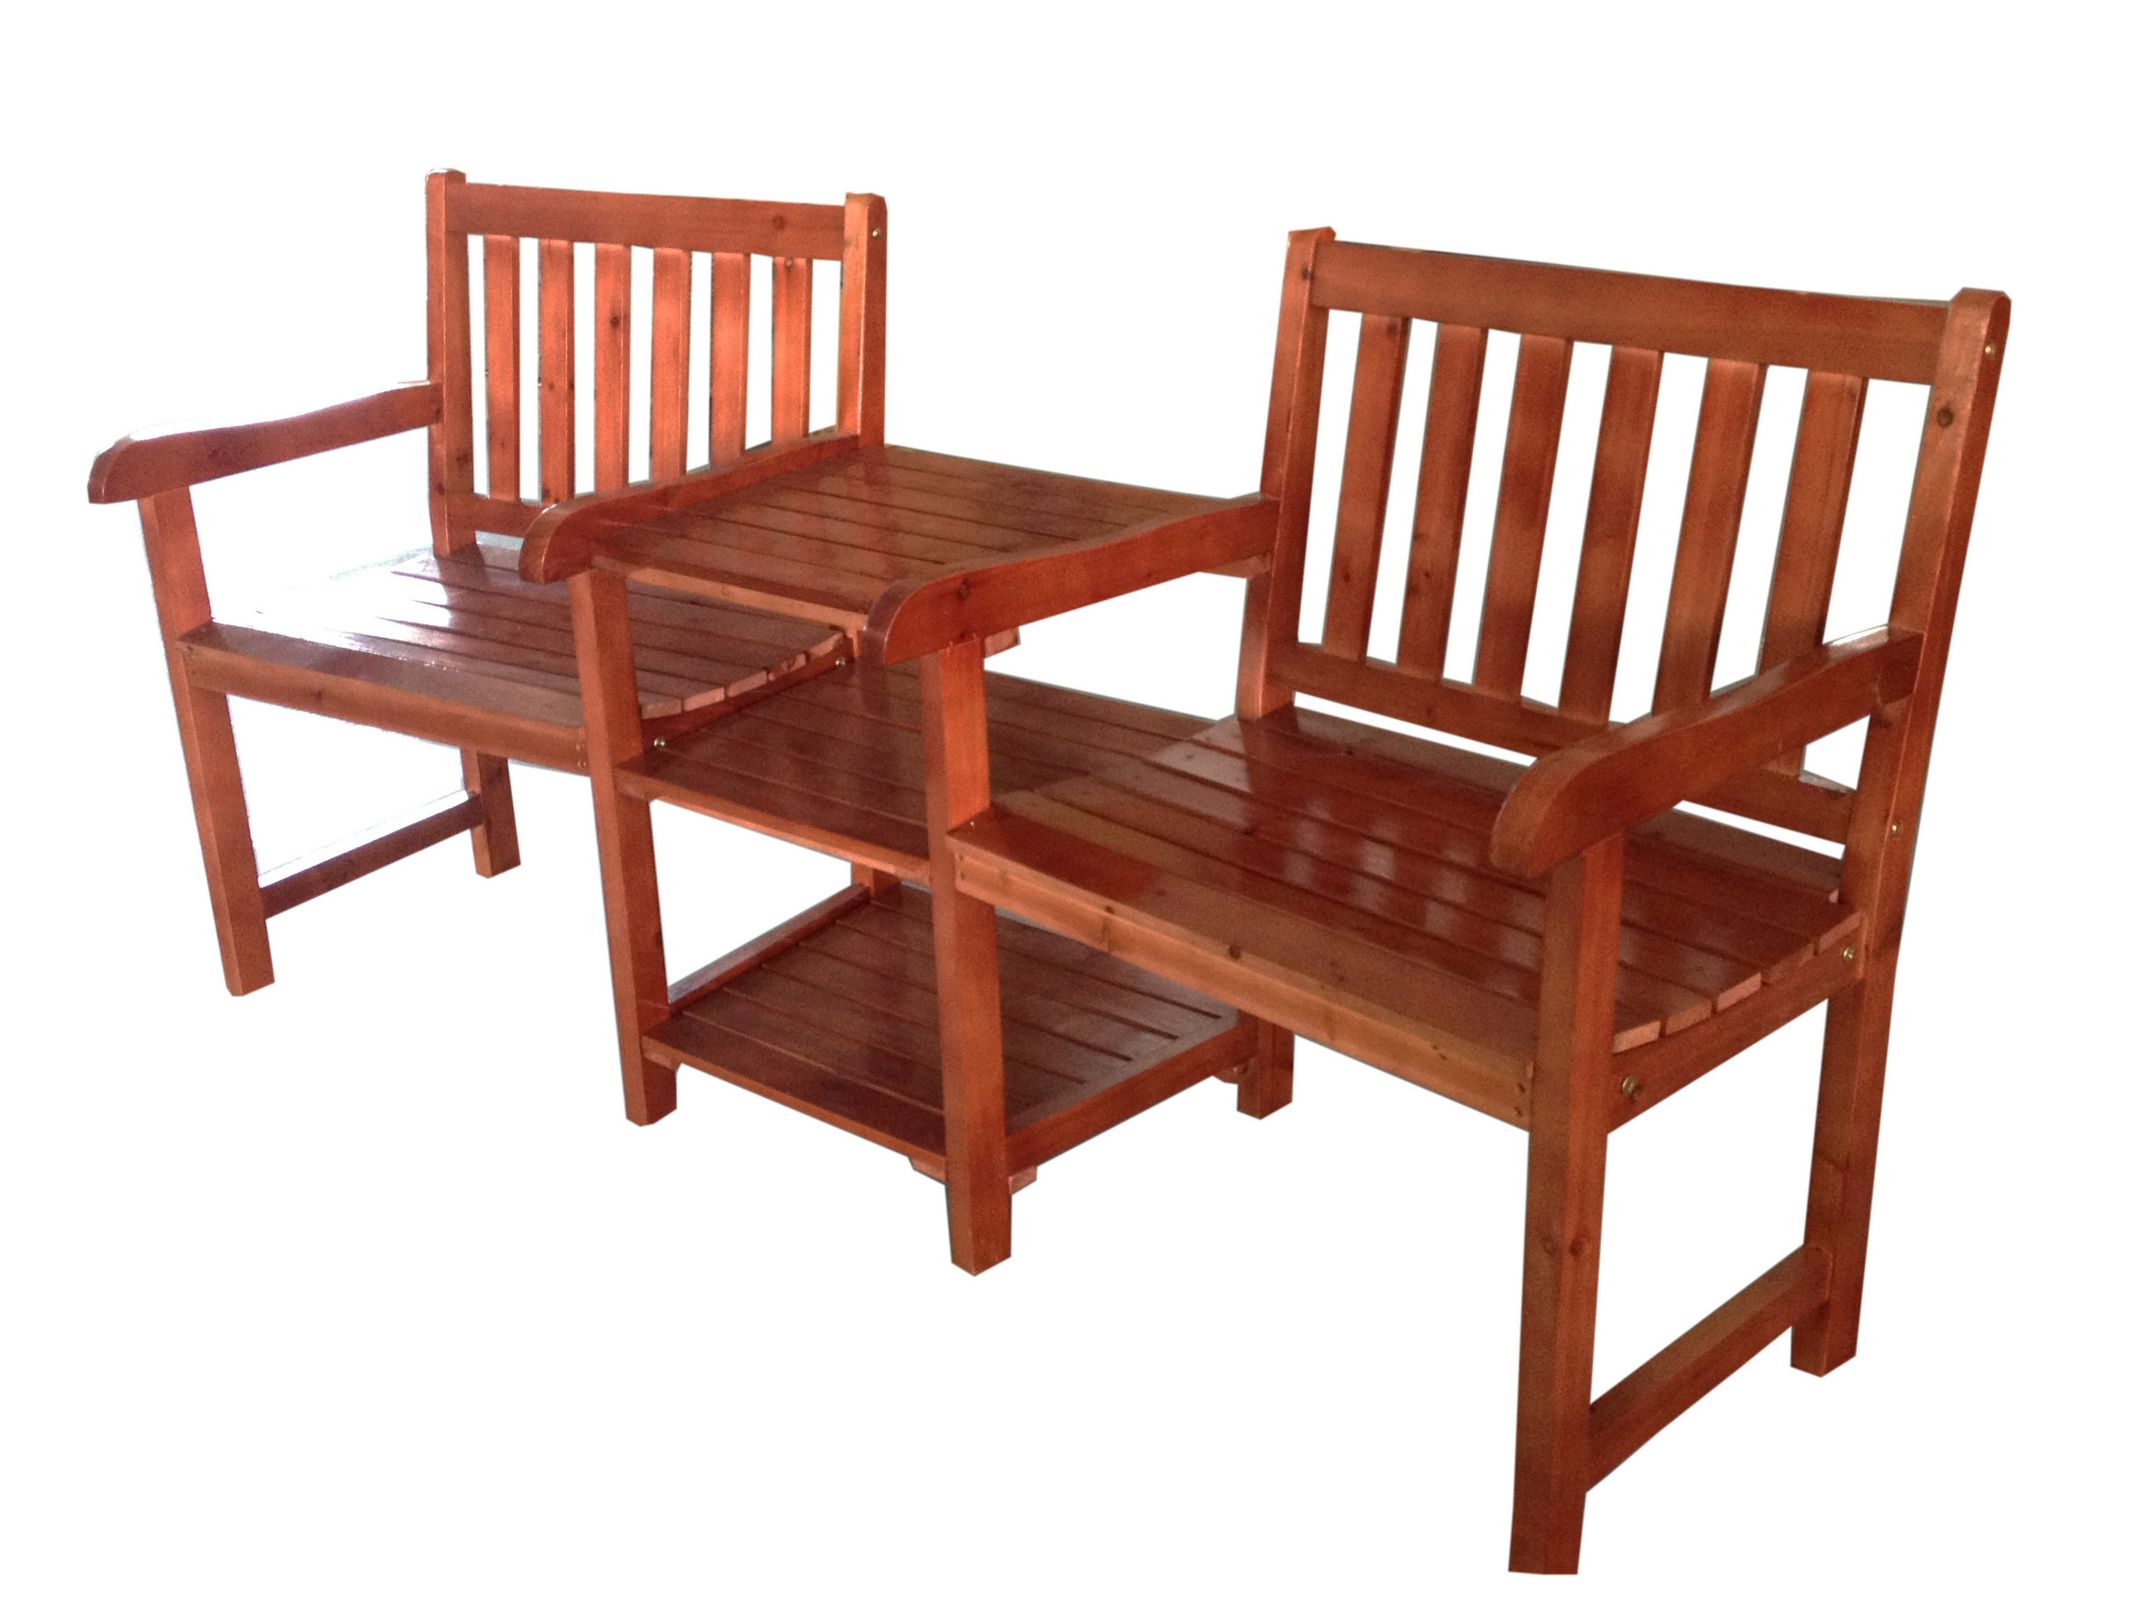 2 Seater Wooden Companion Bench Chair Table Tawny Outdoor Furniture Garden Patio Ebay